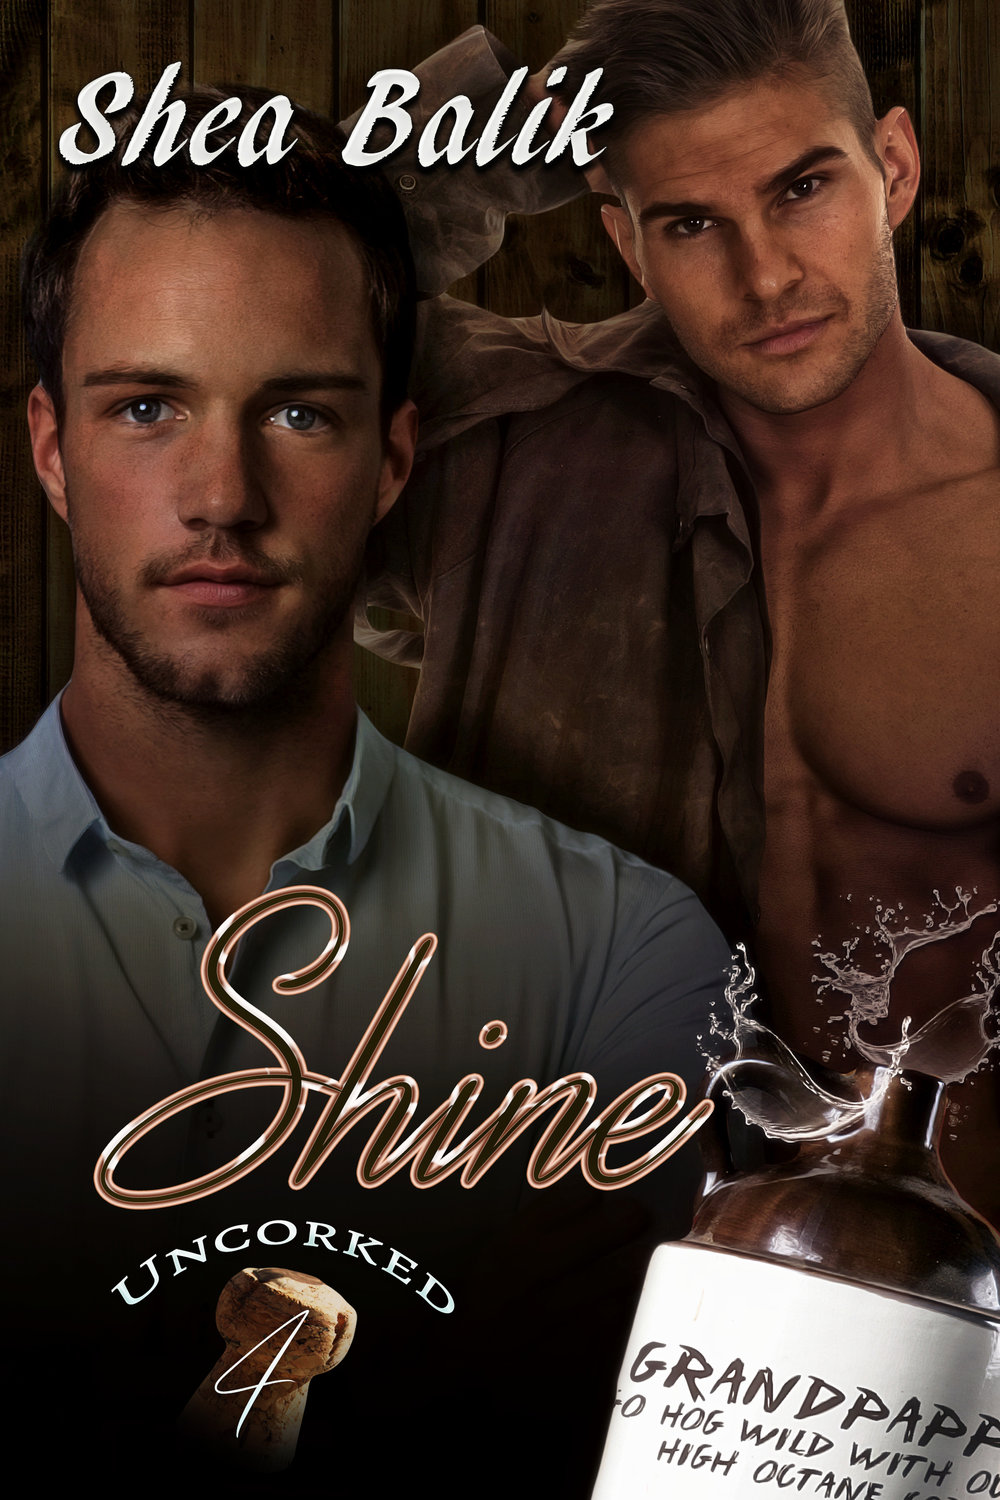 Shine - Shine was over people thinking because he had a southern accent, and made moonshine, that he was a hillbilly redneck with no education. Sure, he occasionally liked to fuck with them and spout out his grandpappy's sayings, like every dog should have a few fleas, but that didn't make him dumber than a box of rocks. So, when he met a man who made his heart race and his mouth go dry with the thought of licking every inch of his body, then instantly put him down because he was making moonshine instead of wine, Shine dared him to try and drink with the big boys.Montague knew better than to take the challenge to drink the moonshine Shine was offering, but he refused to be insulted by some hick from this small, backwater town. The fire that ignited in his stomach and burned a path up his throat, making him want to cry for his mommy, told him just how stupid he could be. Fucking pride. If Shine didn't get that smirk off his face at Montague's reaction to the battery acid he called alcohol, Montague was going to punch him in the mouth. Or kiss him. It was a tough call to make.There is a fine line between love and hate, especially when alcohol is involved. Then again, it might take a little liquid courage to drop their defenses enough to discover their passion for each other.